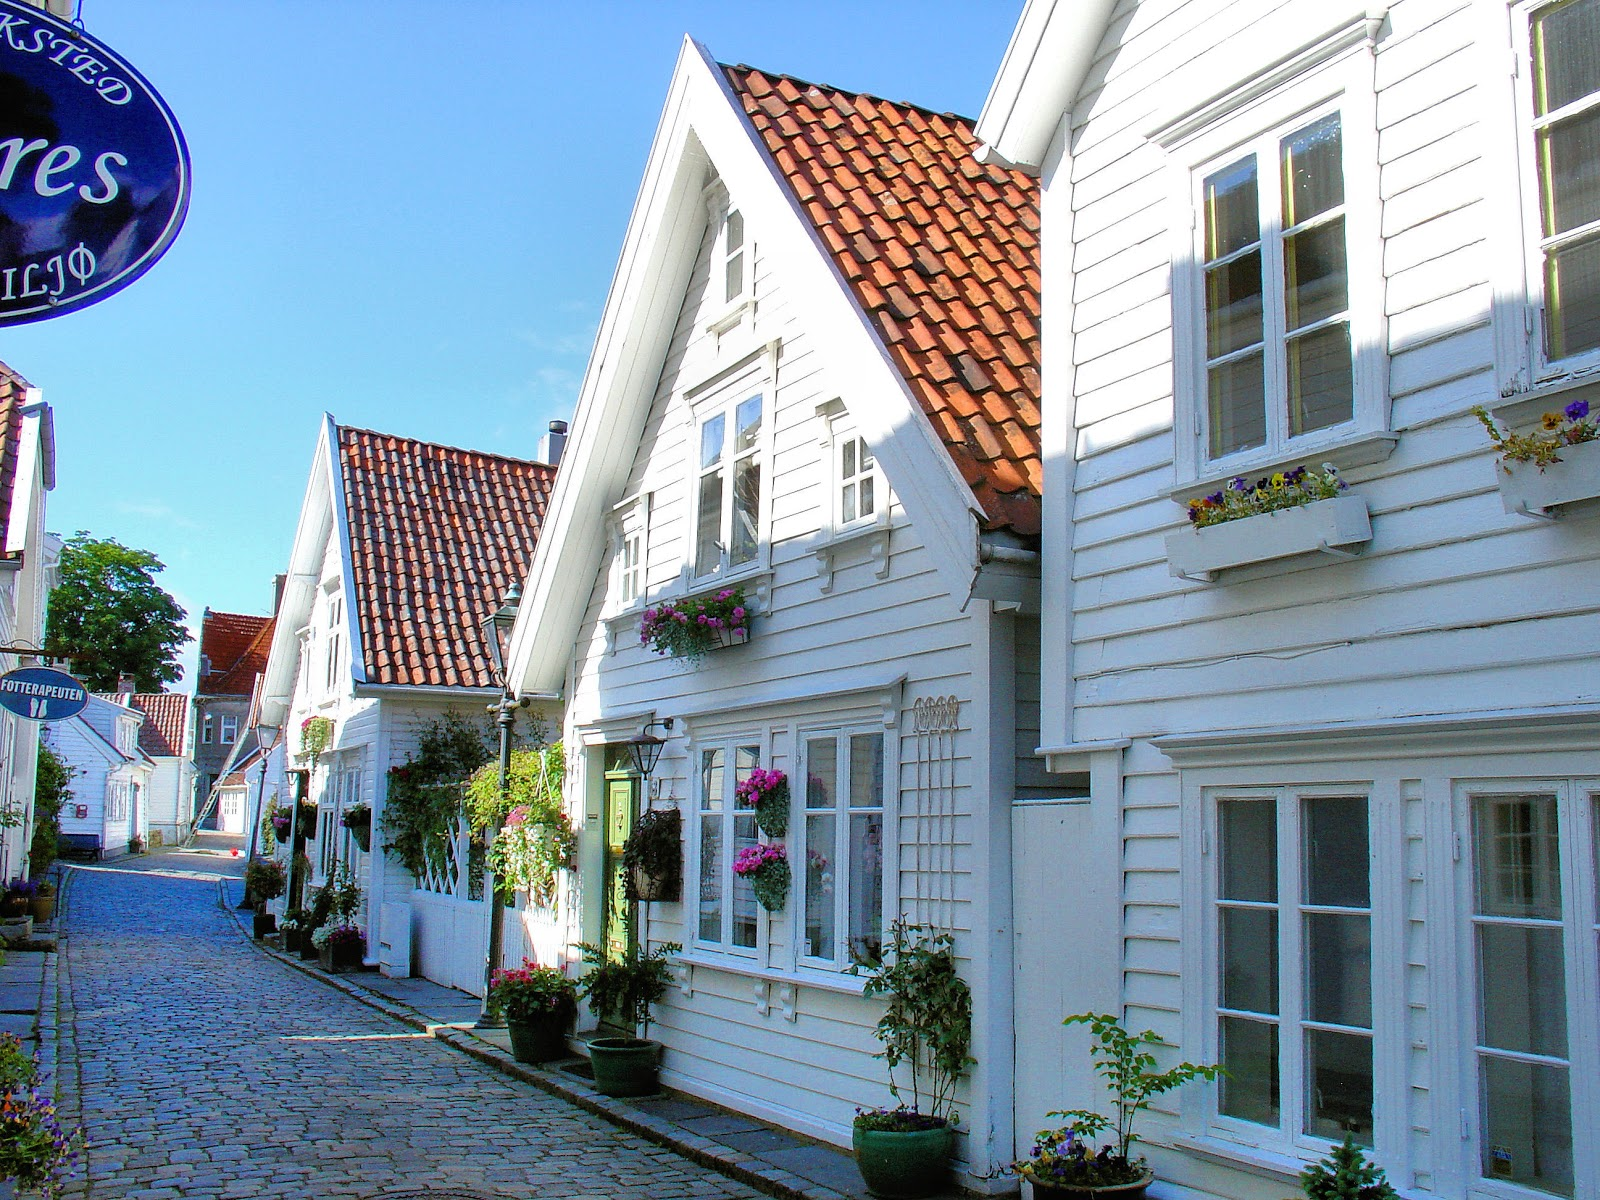 Welcome to Old Stavanger or Gamle Stavanger. These quaint clapboard houses date back to the early 1800s.